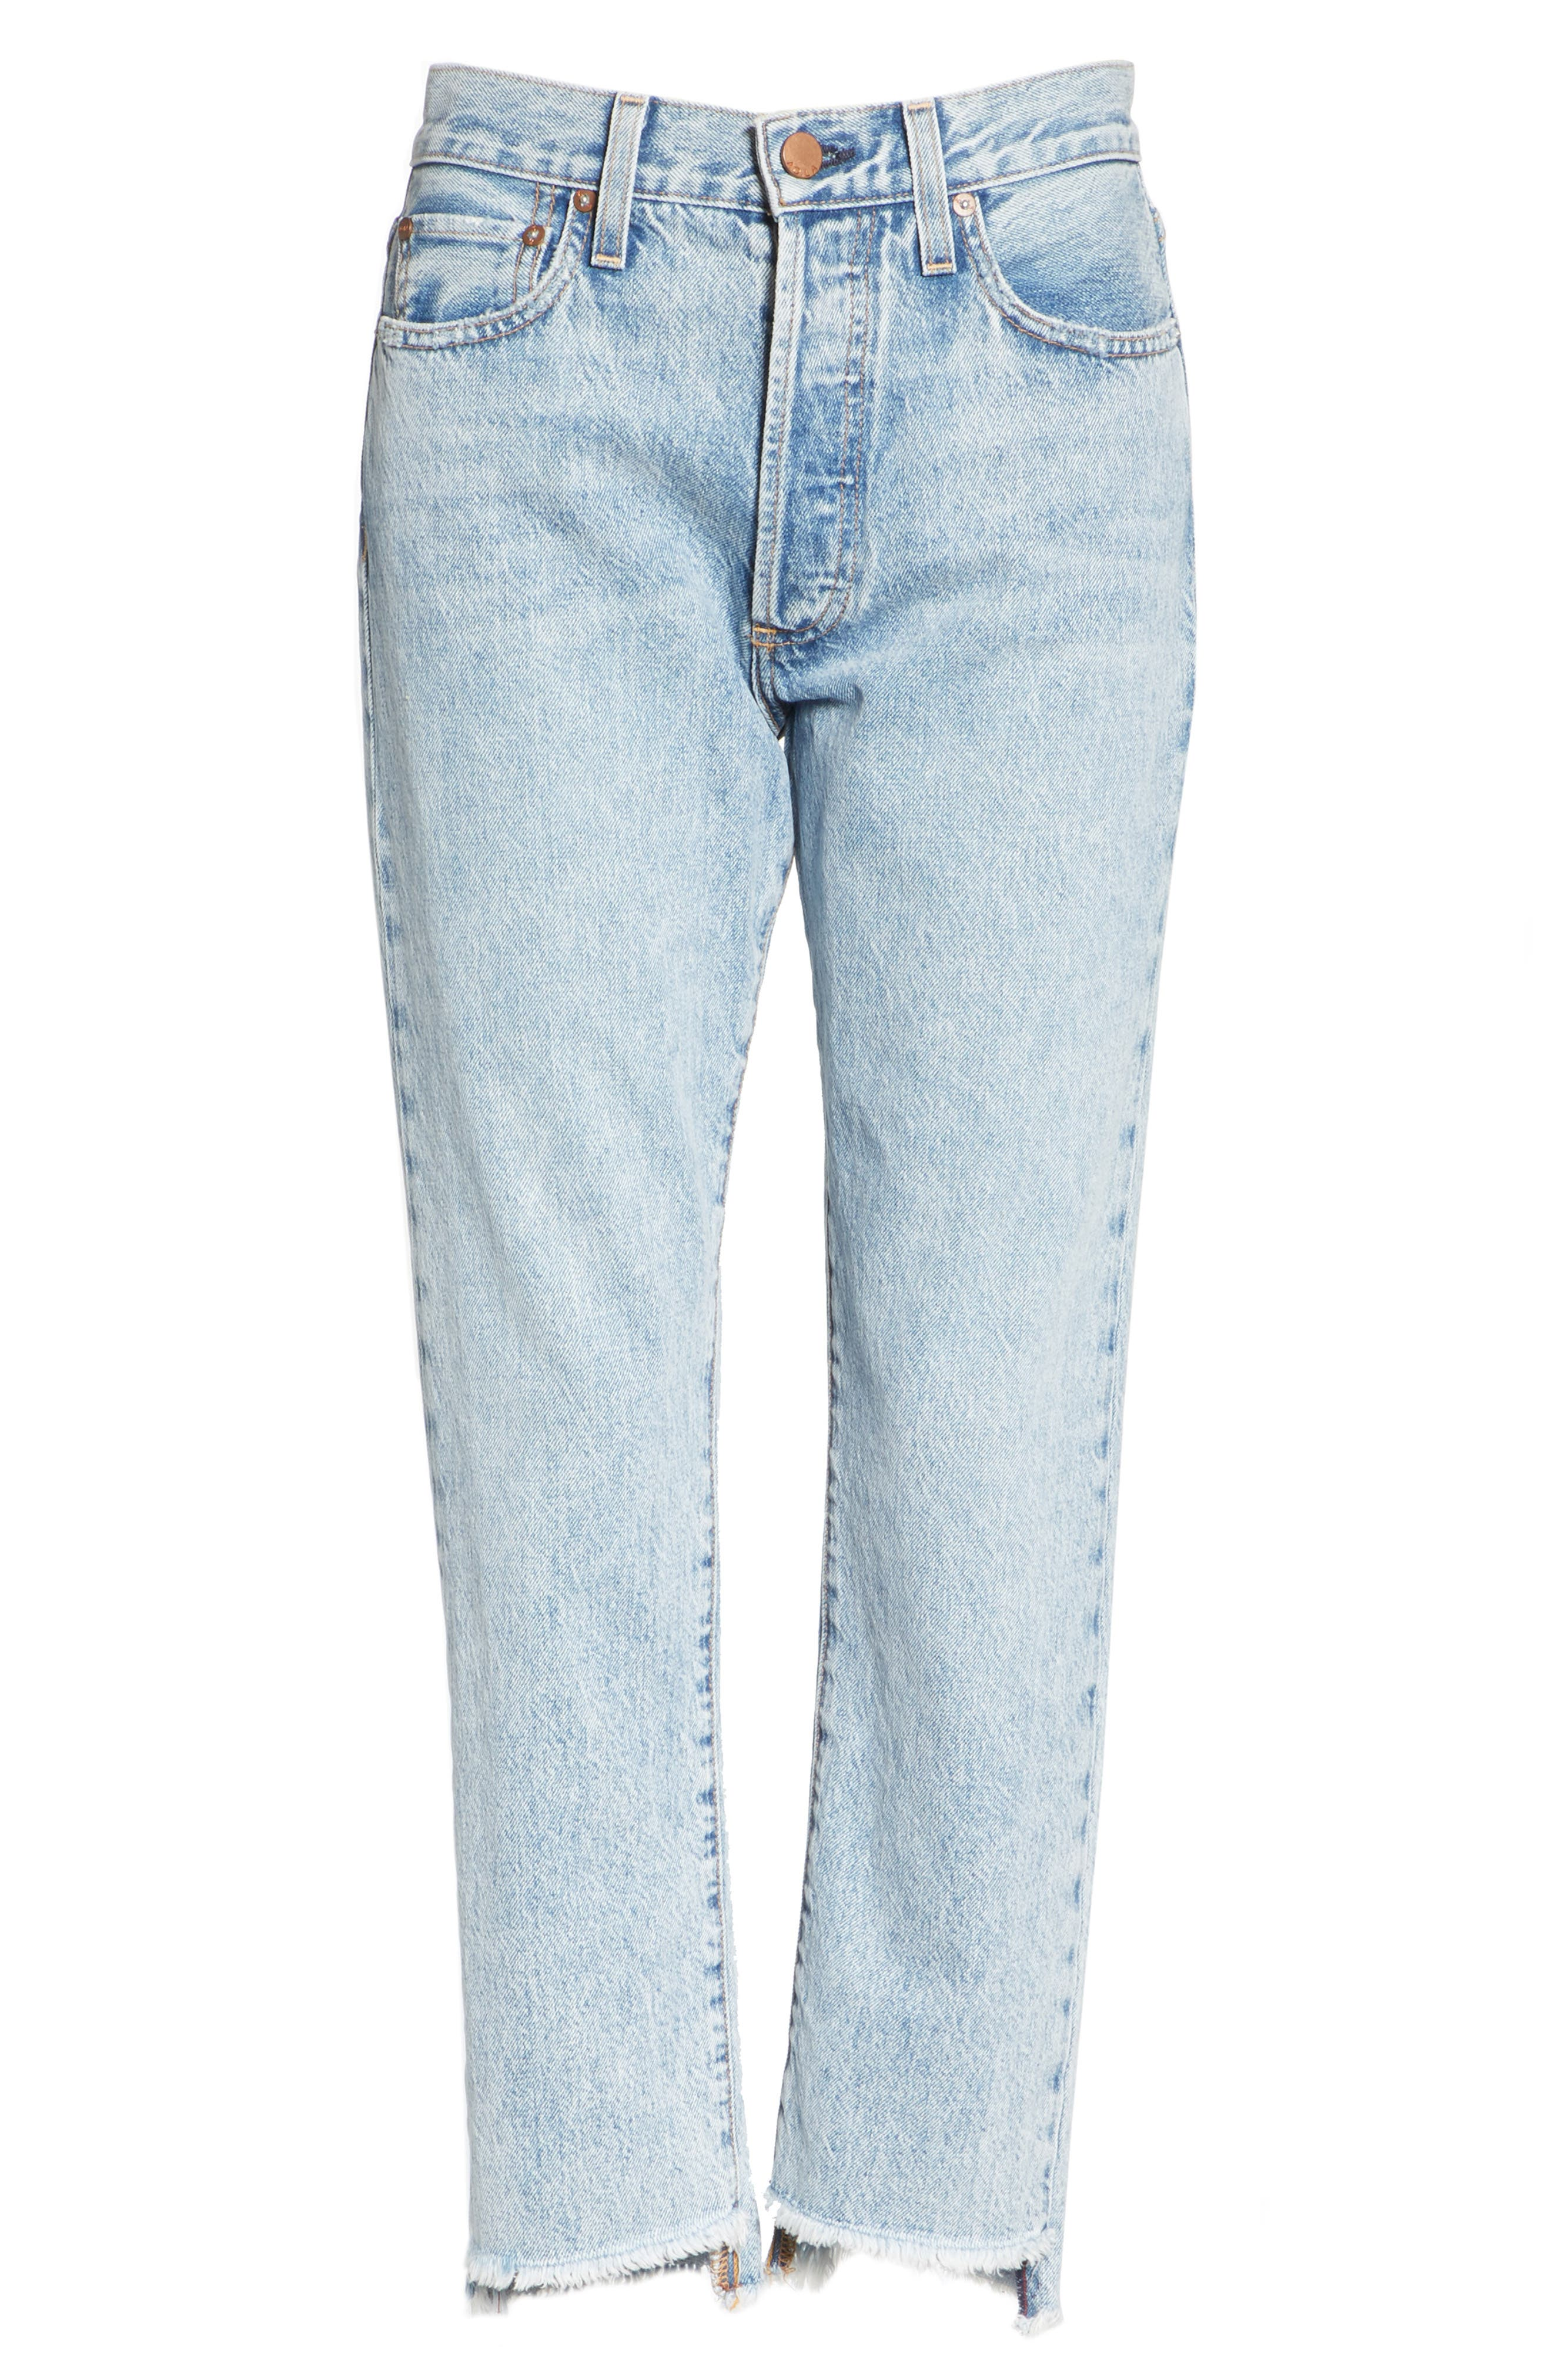 ALICE + OLIVIA JEANS,                             Amazing Good Luck Slim Girlfriend Jeans,                             Alternate thumbnail 6, color,                             490